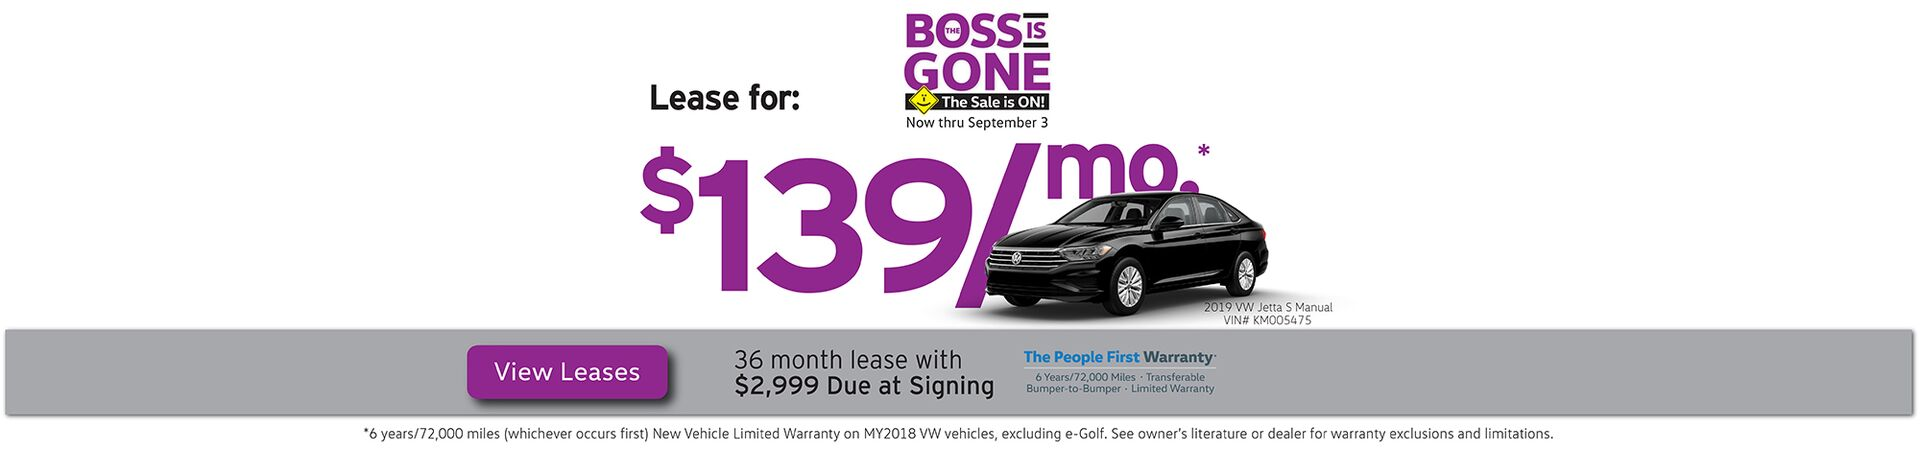 August Boss is Gone leases starting at $129/mo.